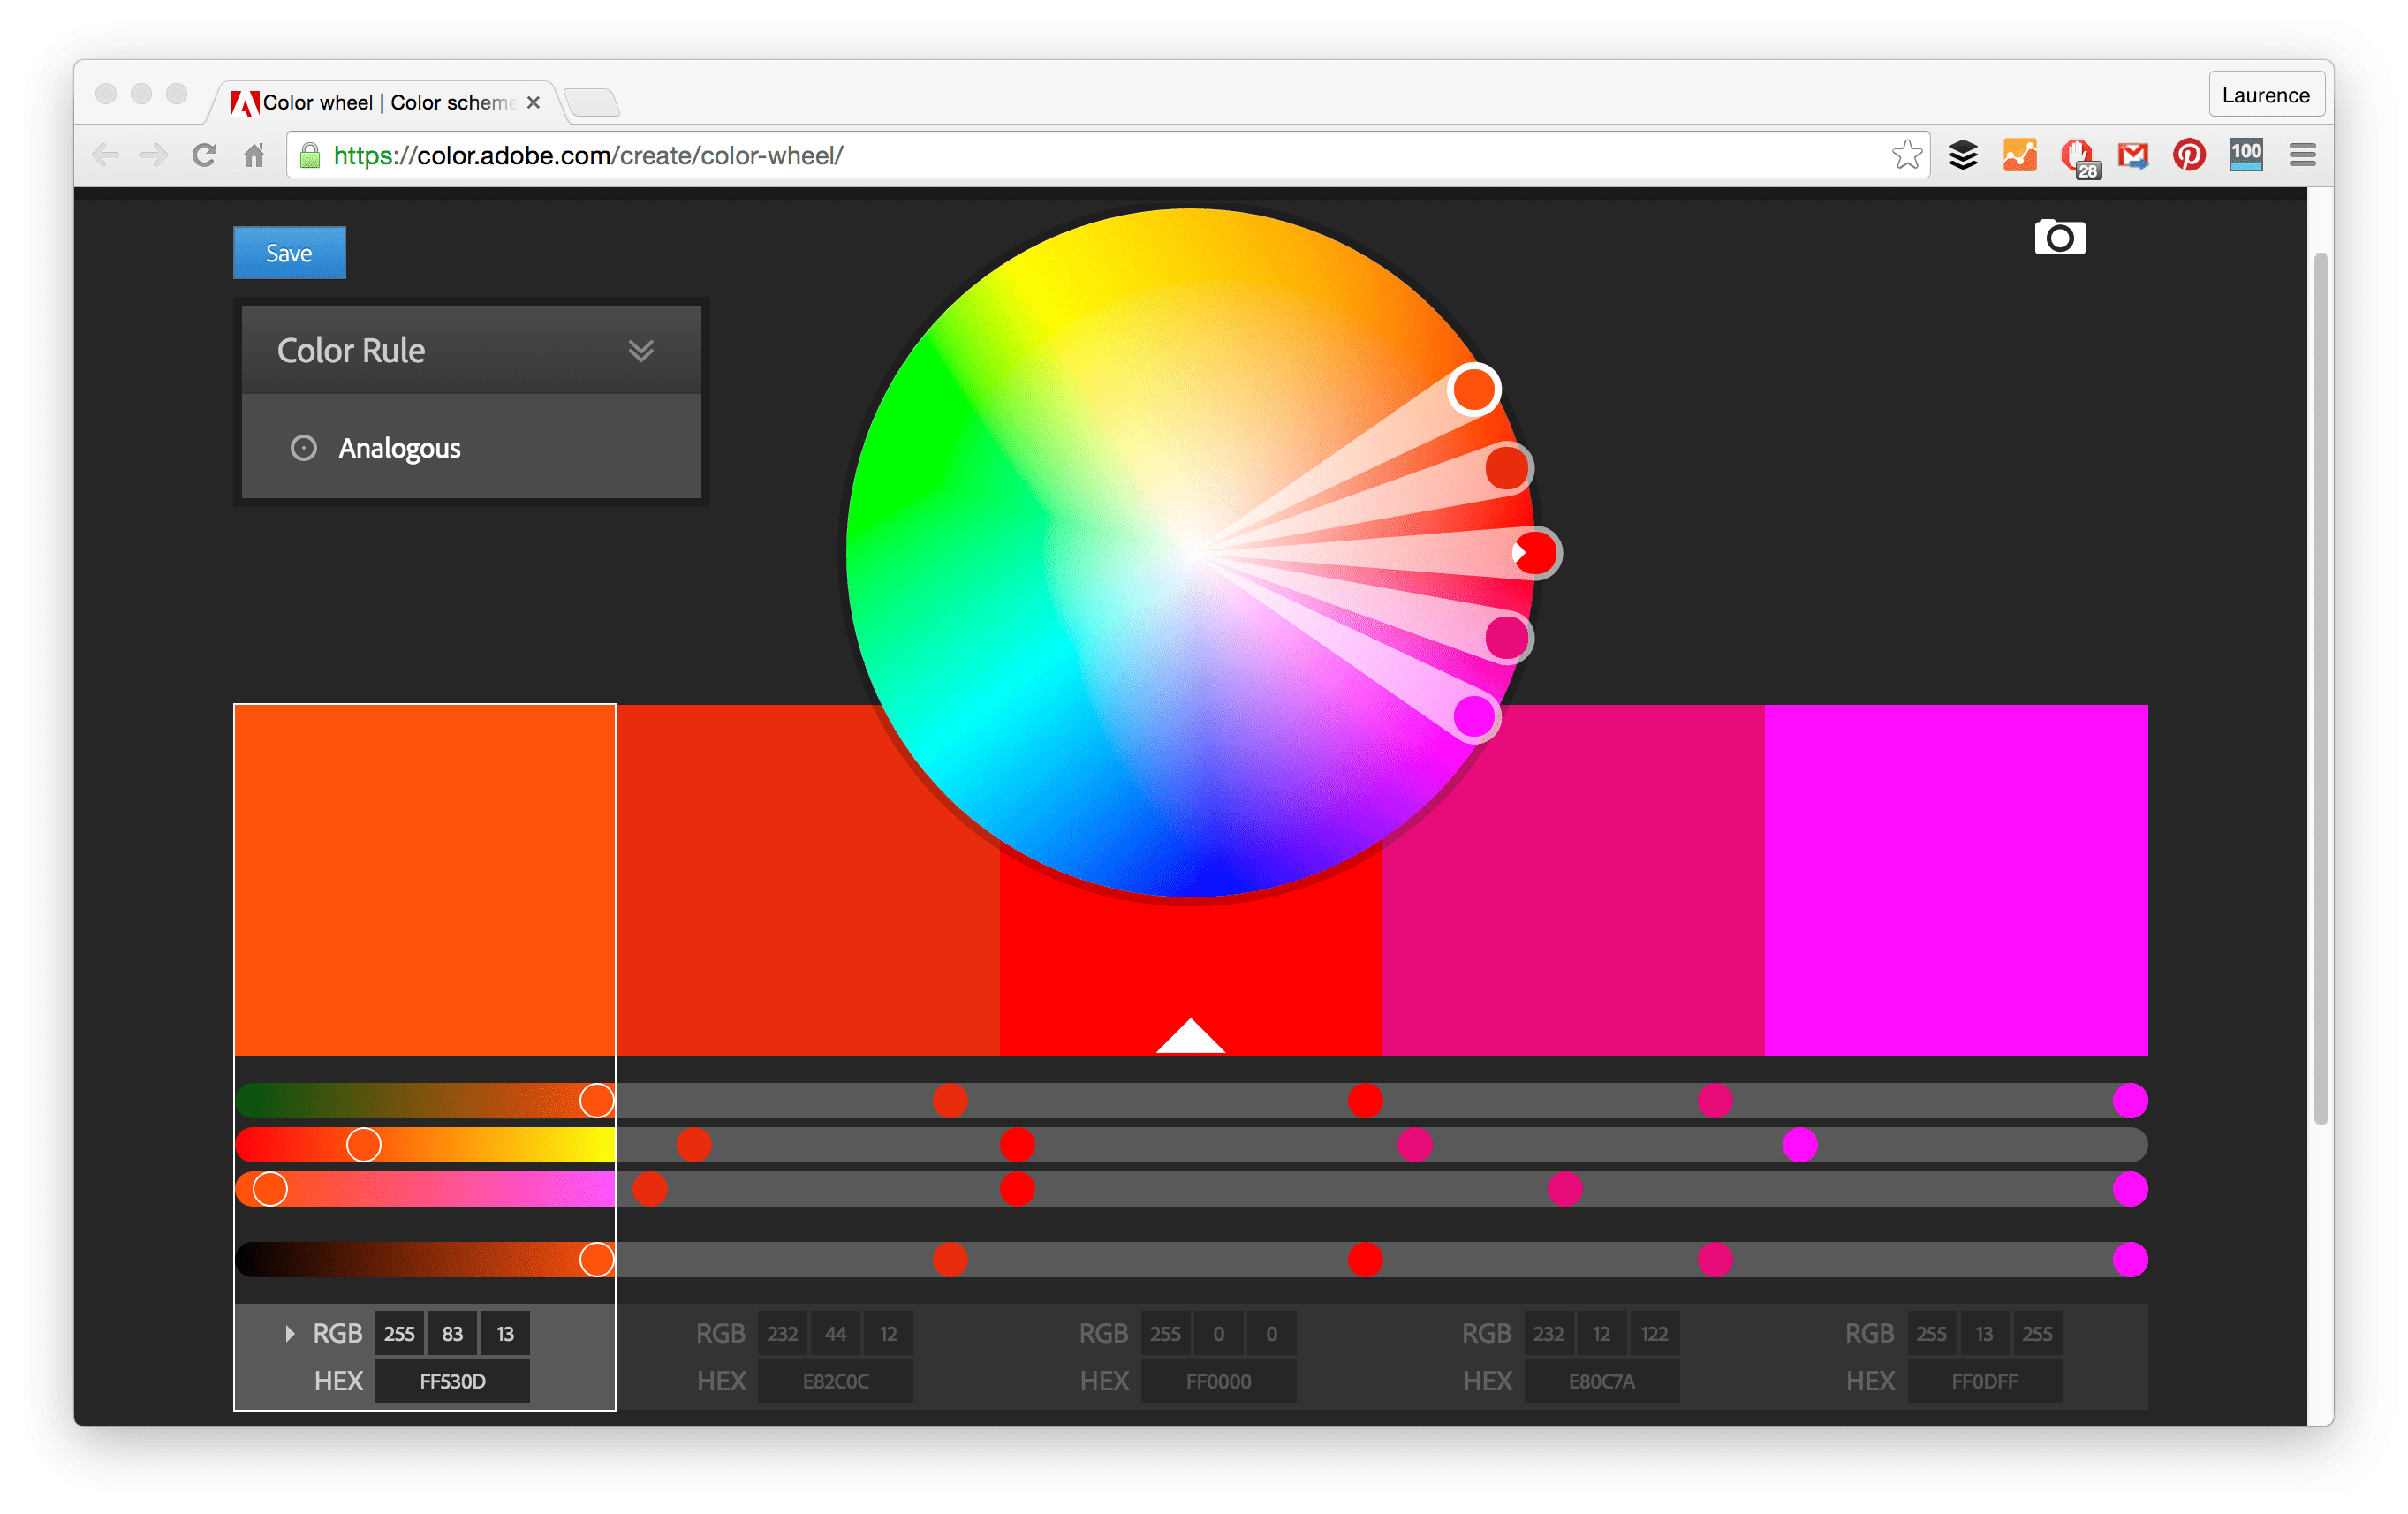 Game color theory - Adobe Color Wheel